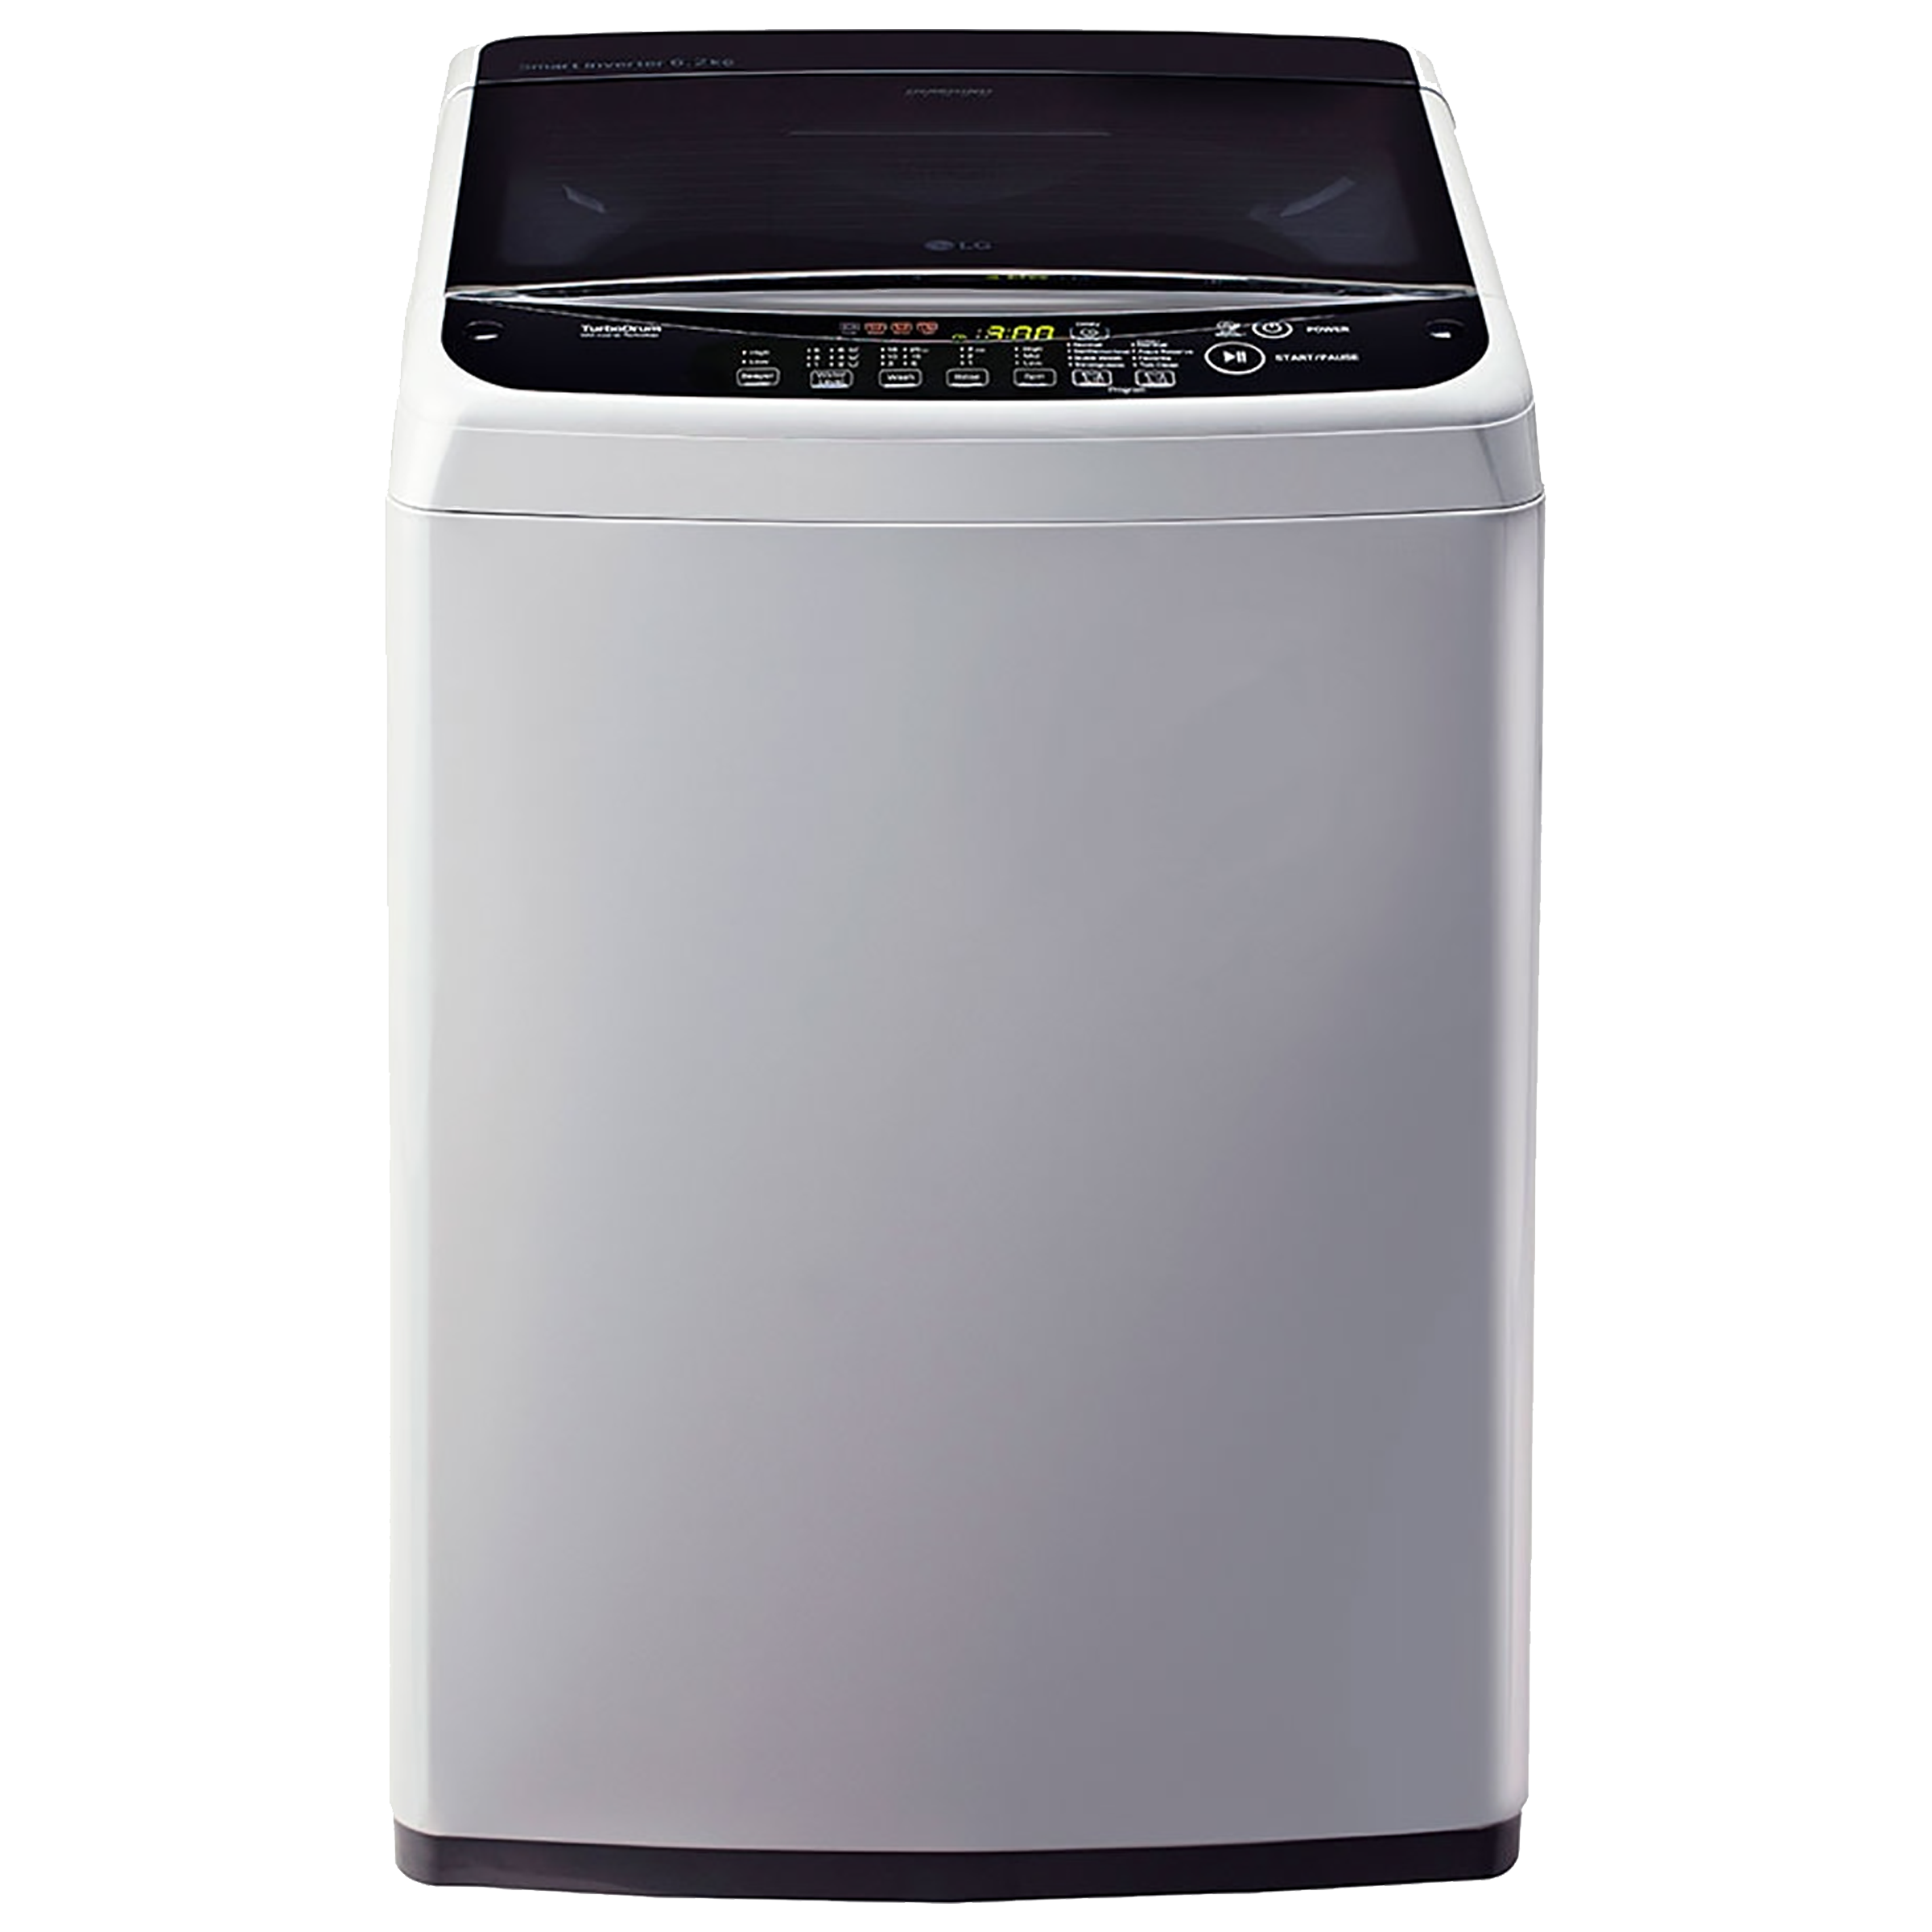 LG 6.2 Kg 5 Star Fully Automatic Top Loading Washing Machine (T7288NDDLG, Silver)_1